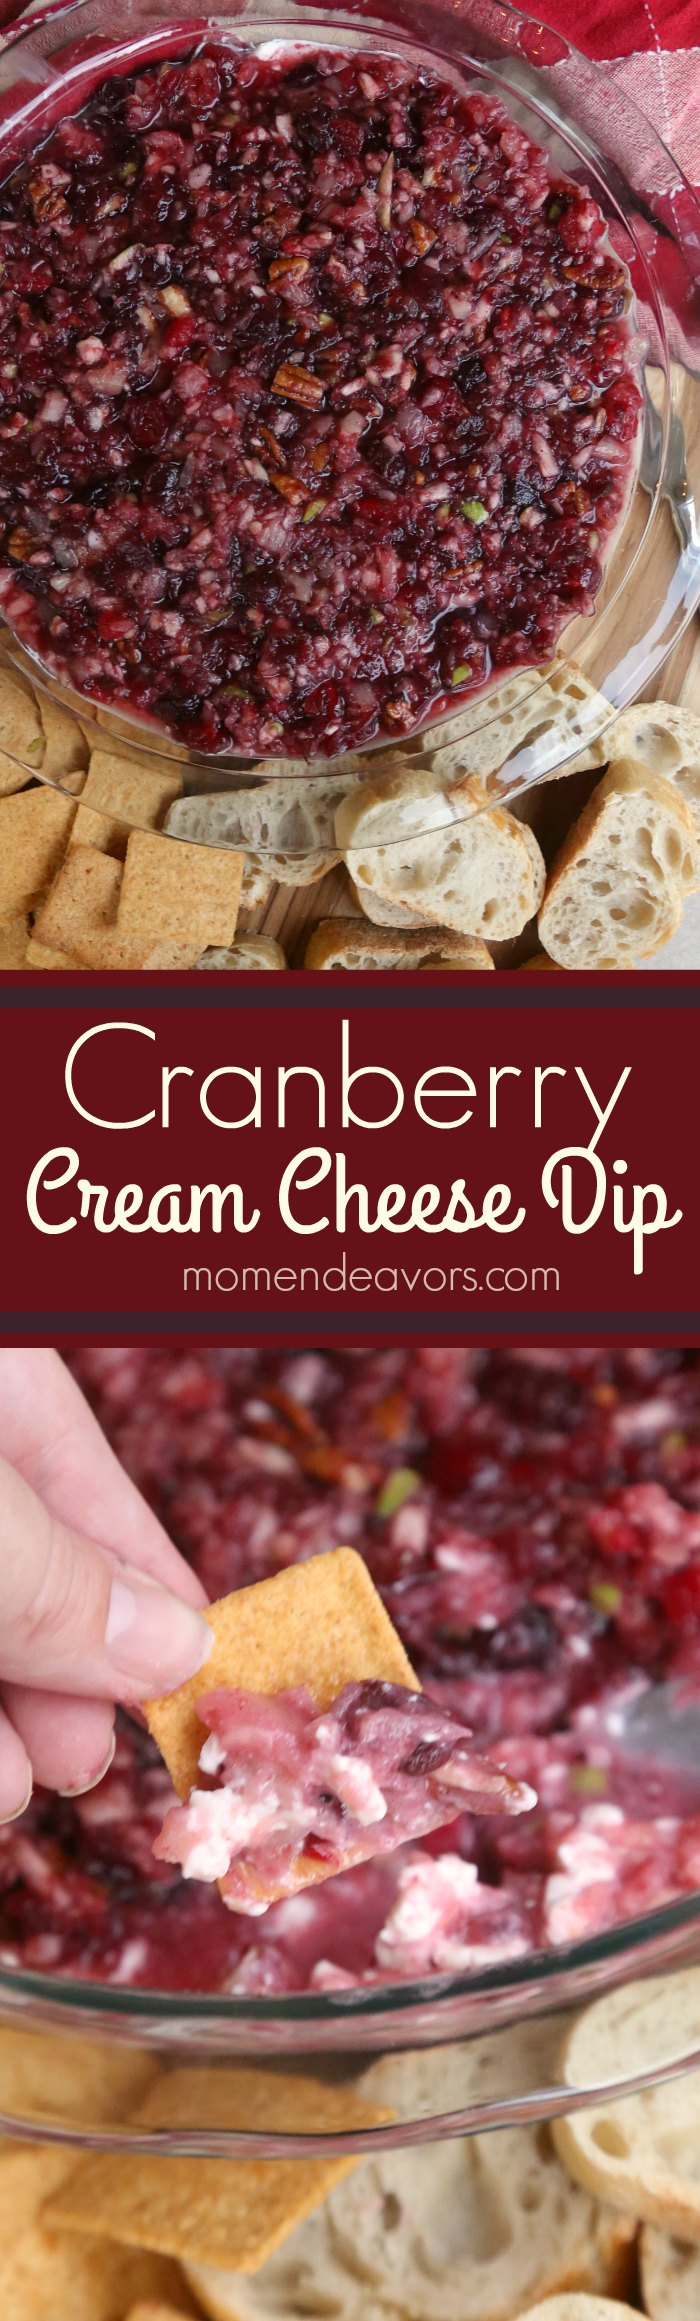 Cranberry Cream Cheese Dip Recipe